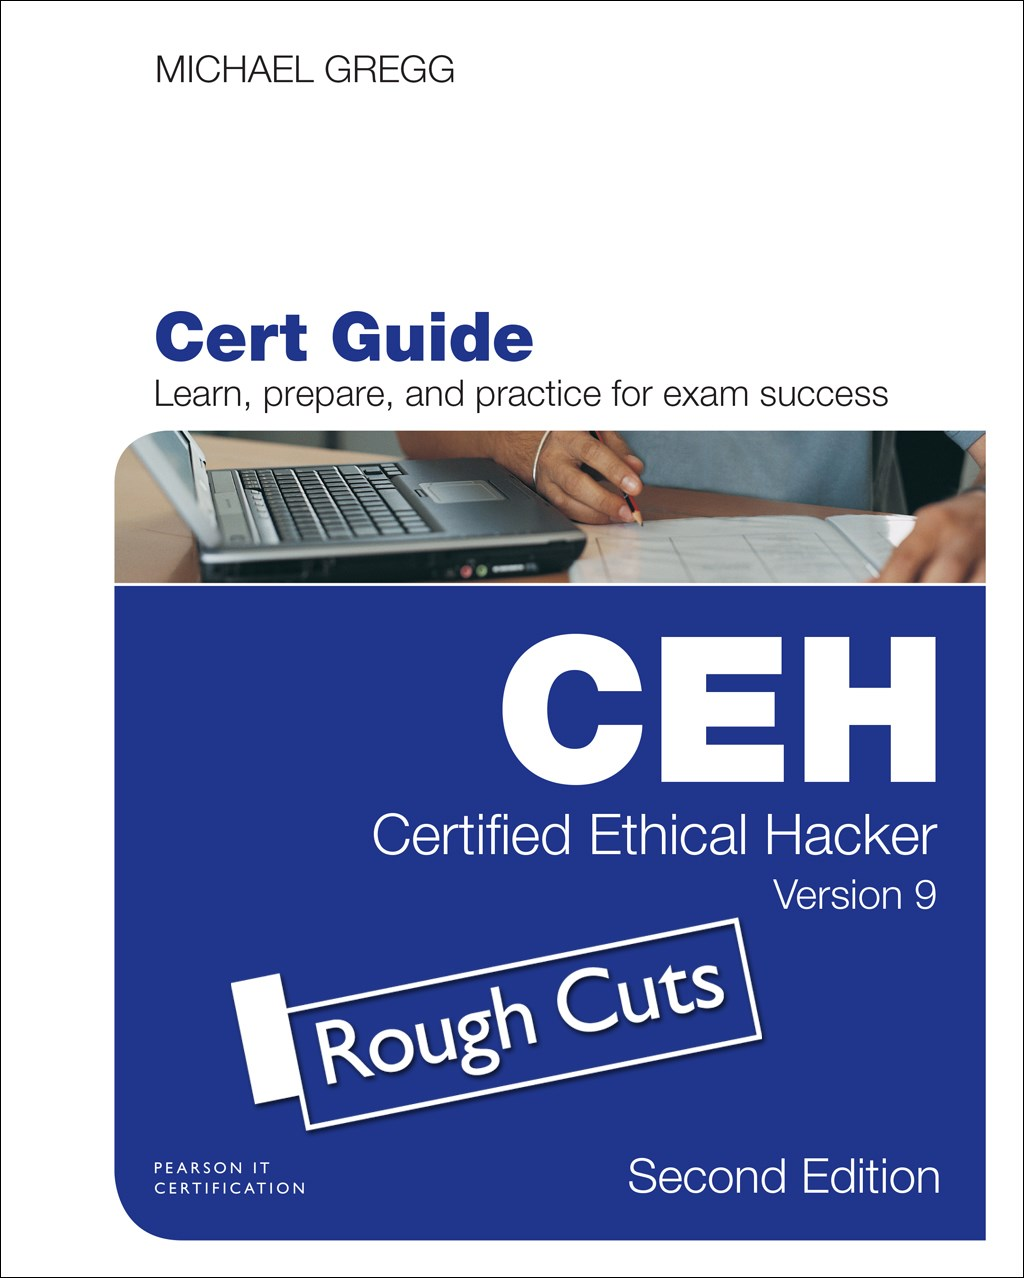 Certified Ethical Hacker (CEH) Version 9 Cert Guide,Rough Cuts, 2nd Edition